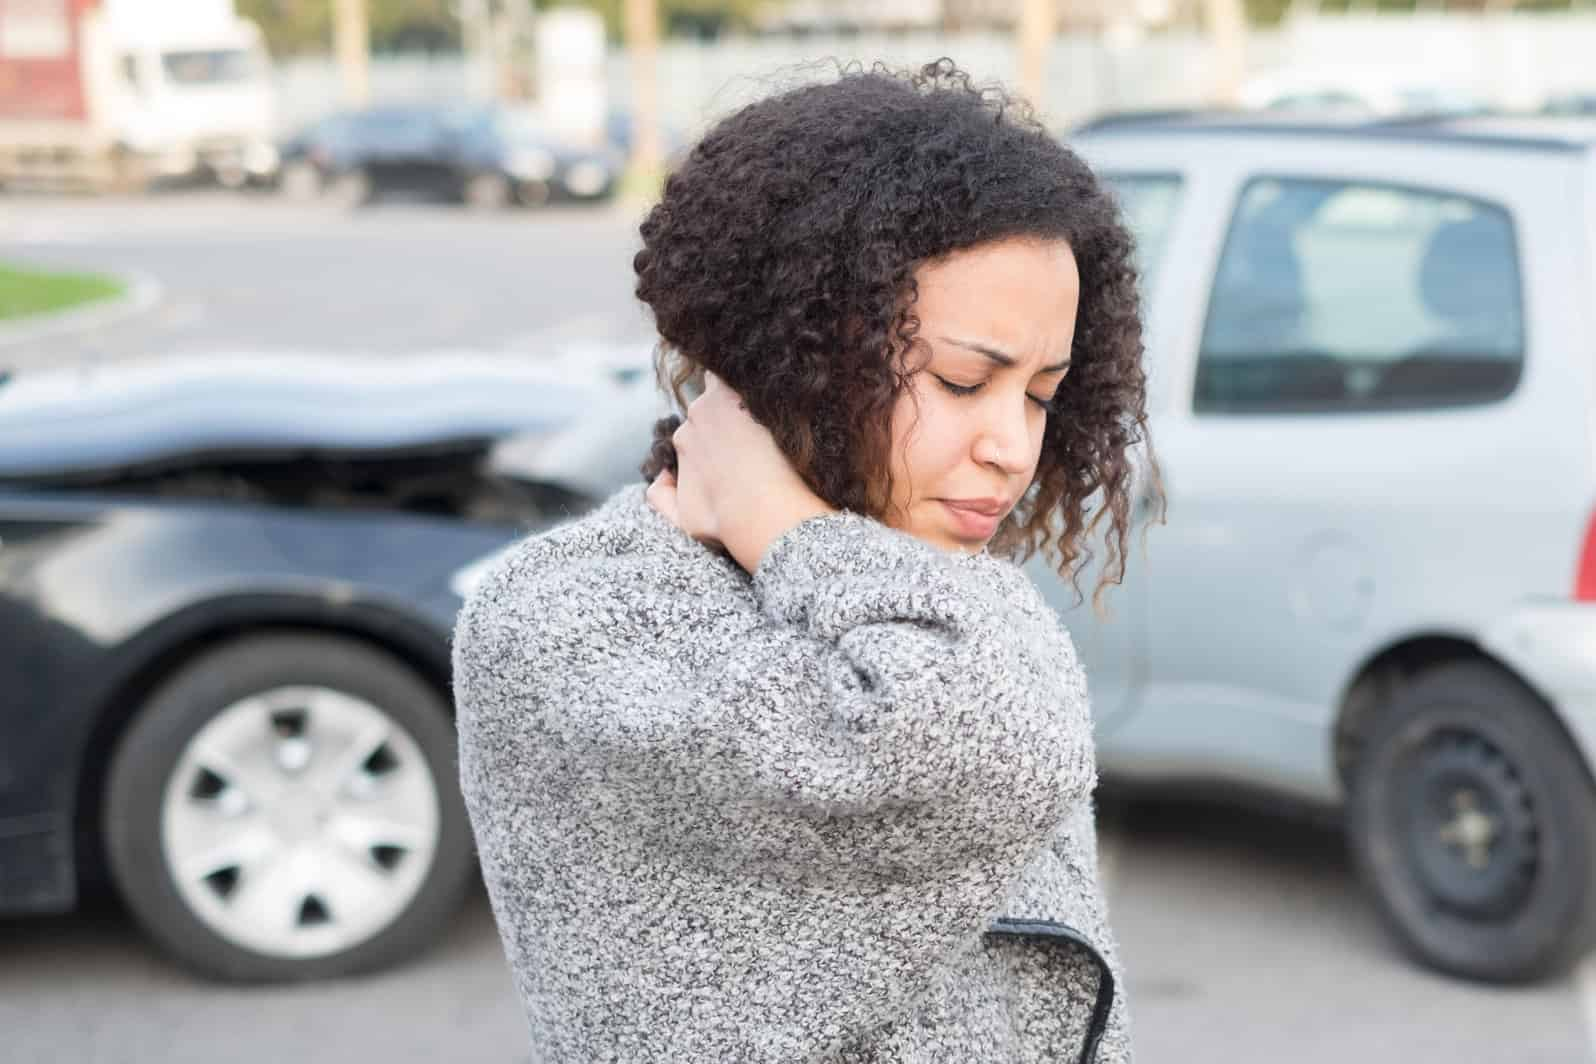 Reasons Why You Should Have Chiropractic Treatment After a Car Accident